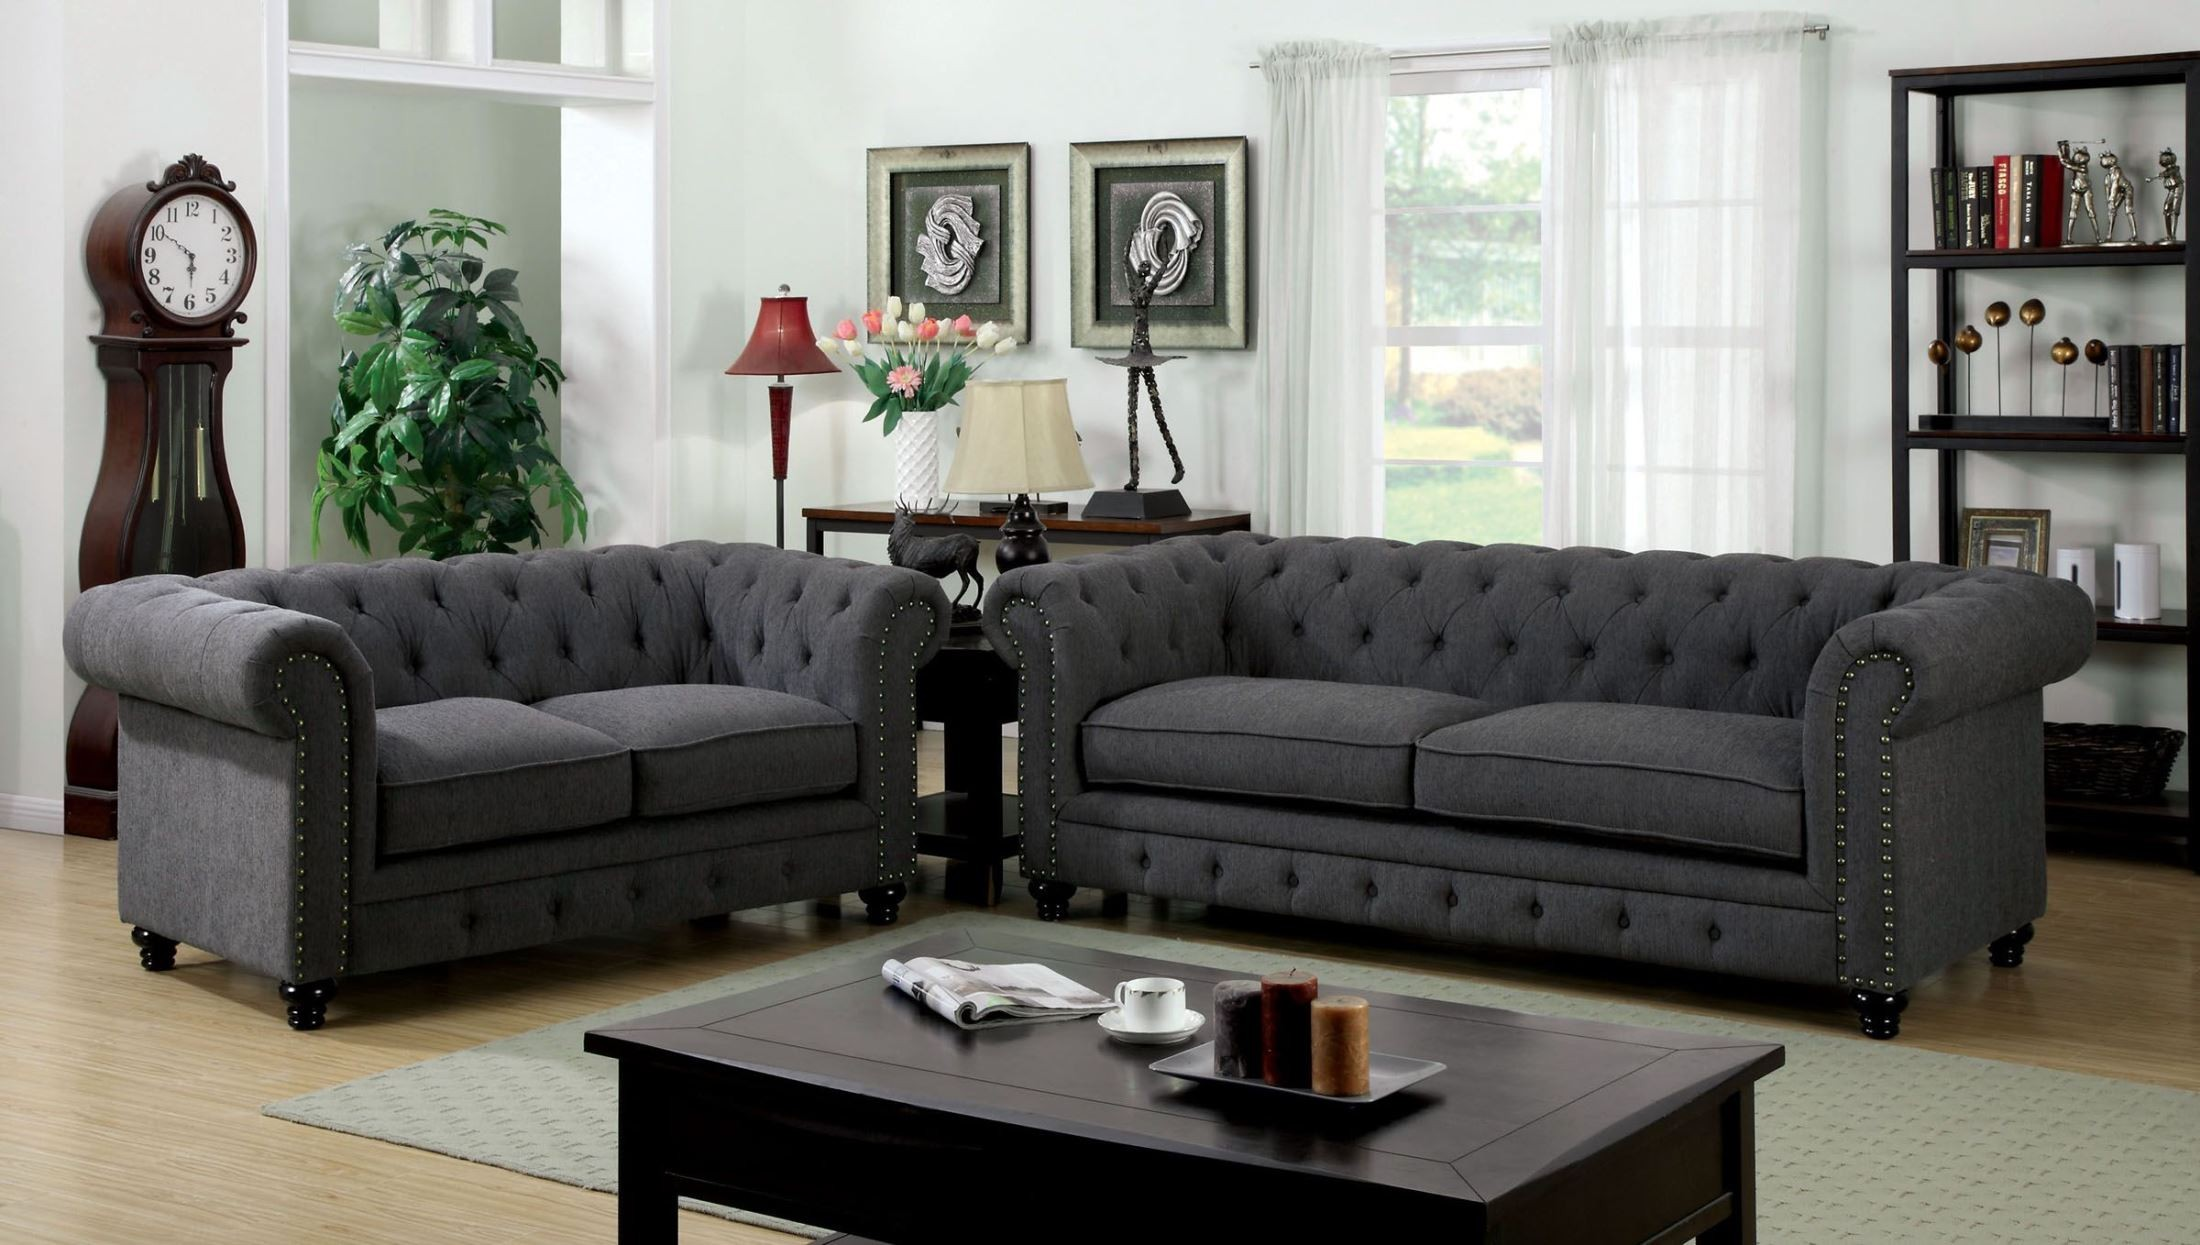 Stanford Gray Fabric Living Room Set From Furniture Of